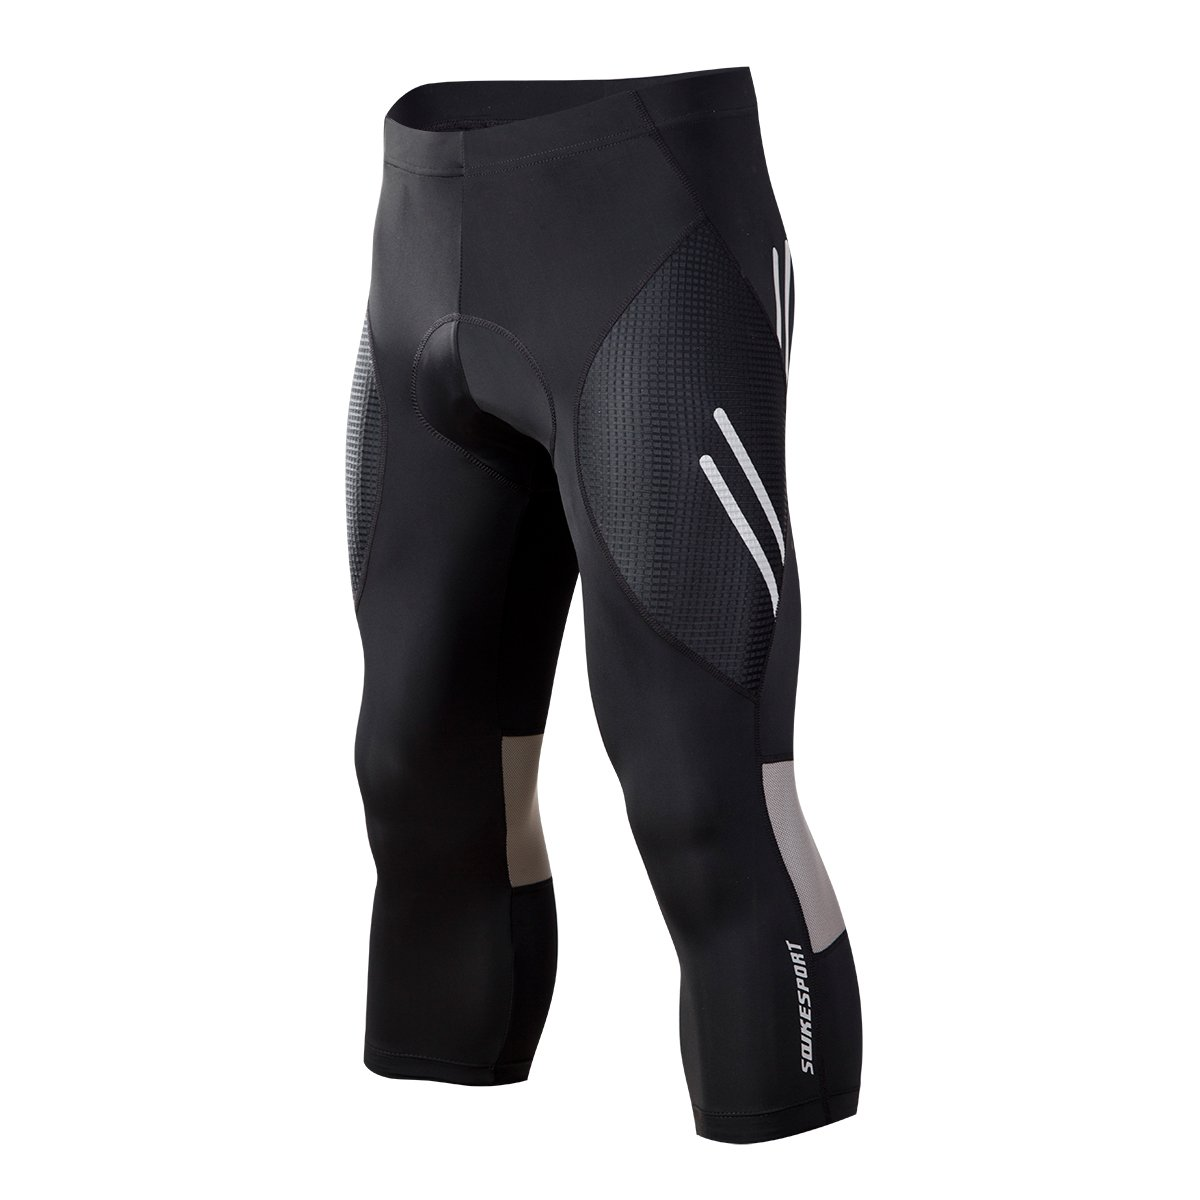 f937fc2919 Eco-daily Cycling Tight are the ideal for the cyclists who wants excellent  comfort and performance during ride. The leggings are specifically designed  for ...